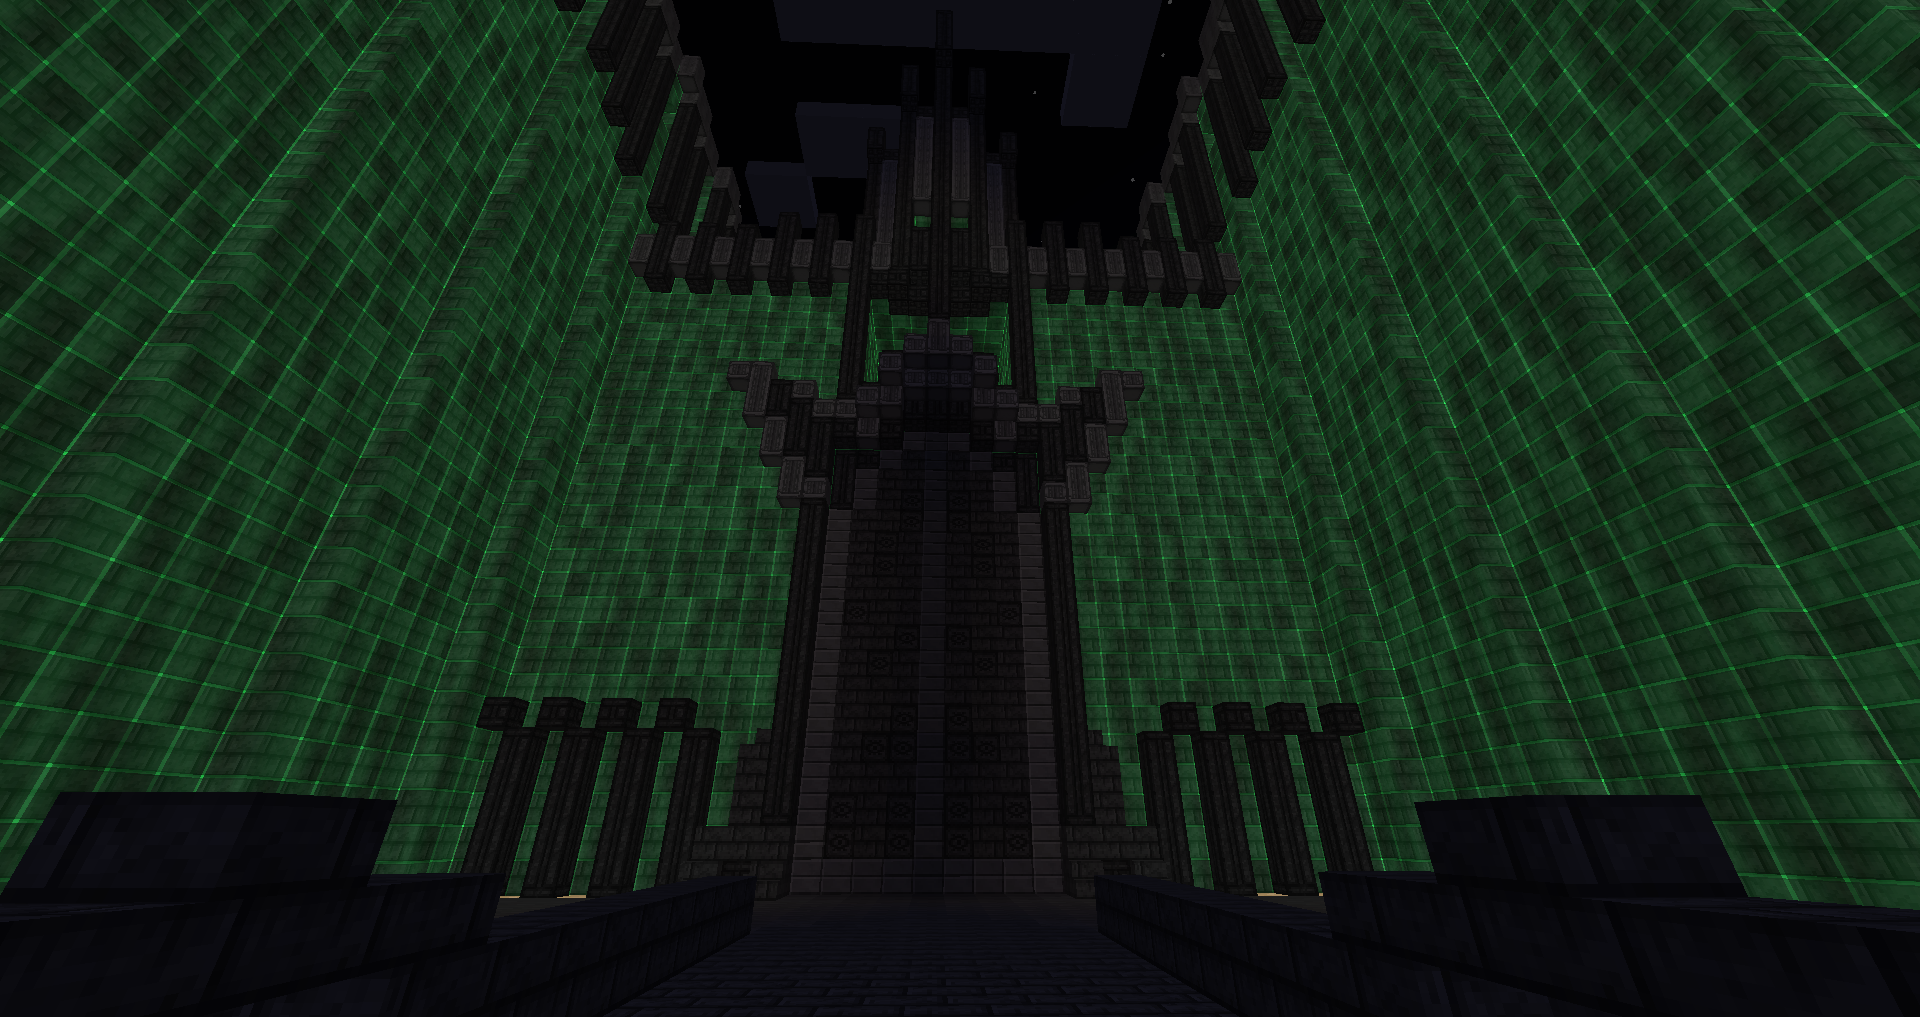 LOTR schematic liry | The Lord of the Rings Minecraft Mod Wiki ... on